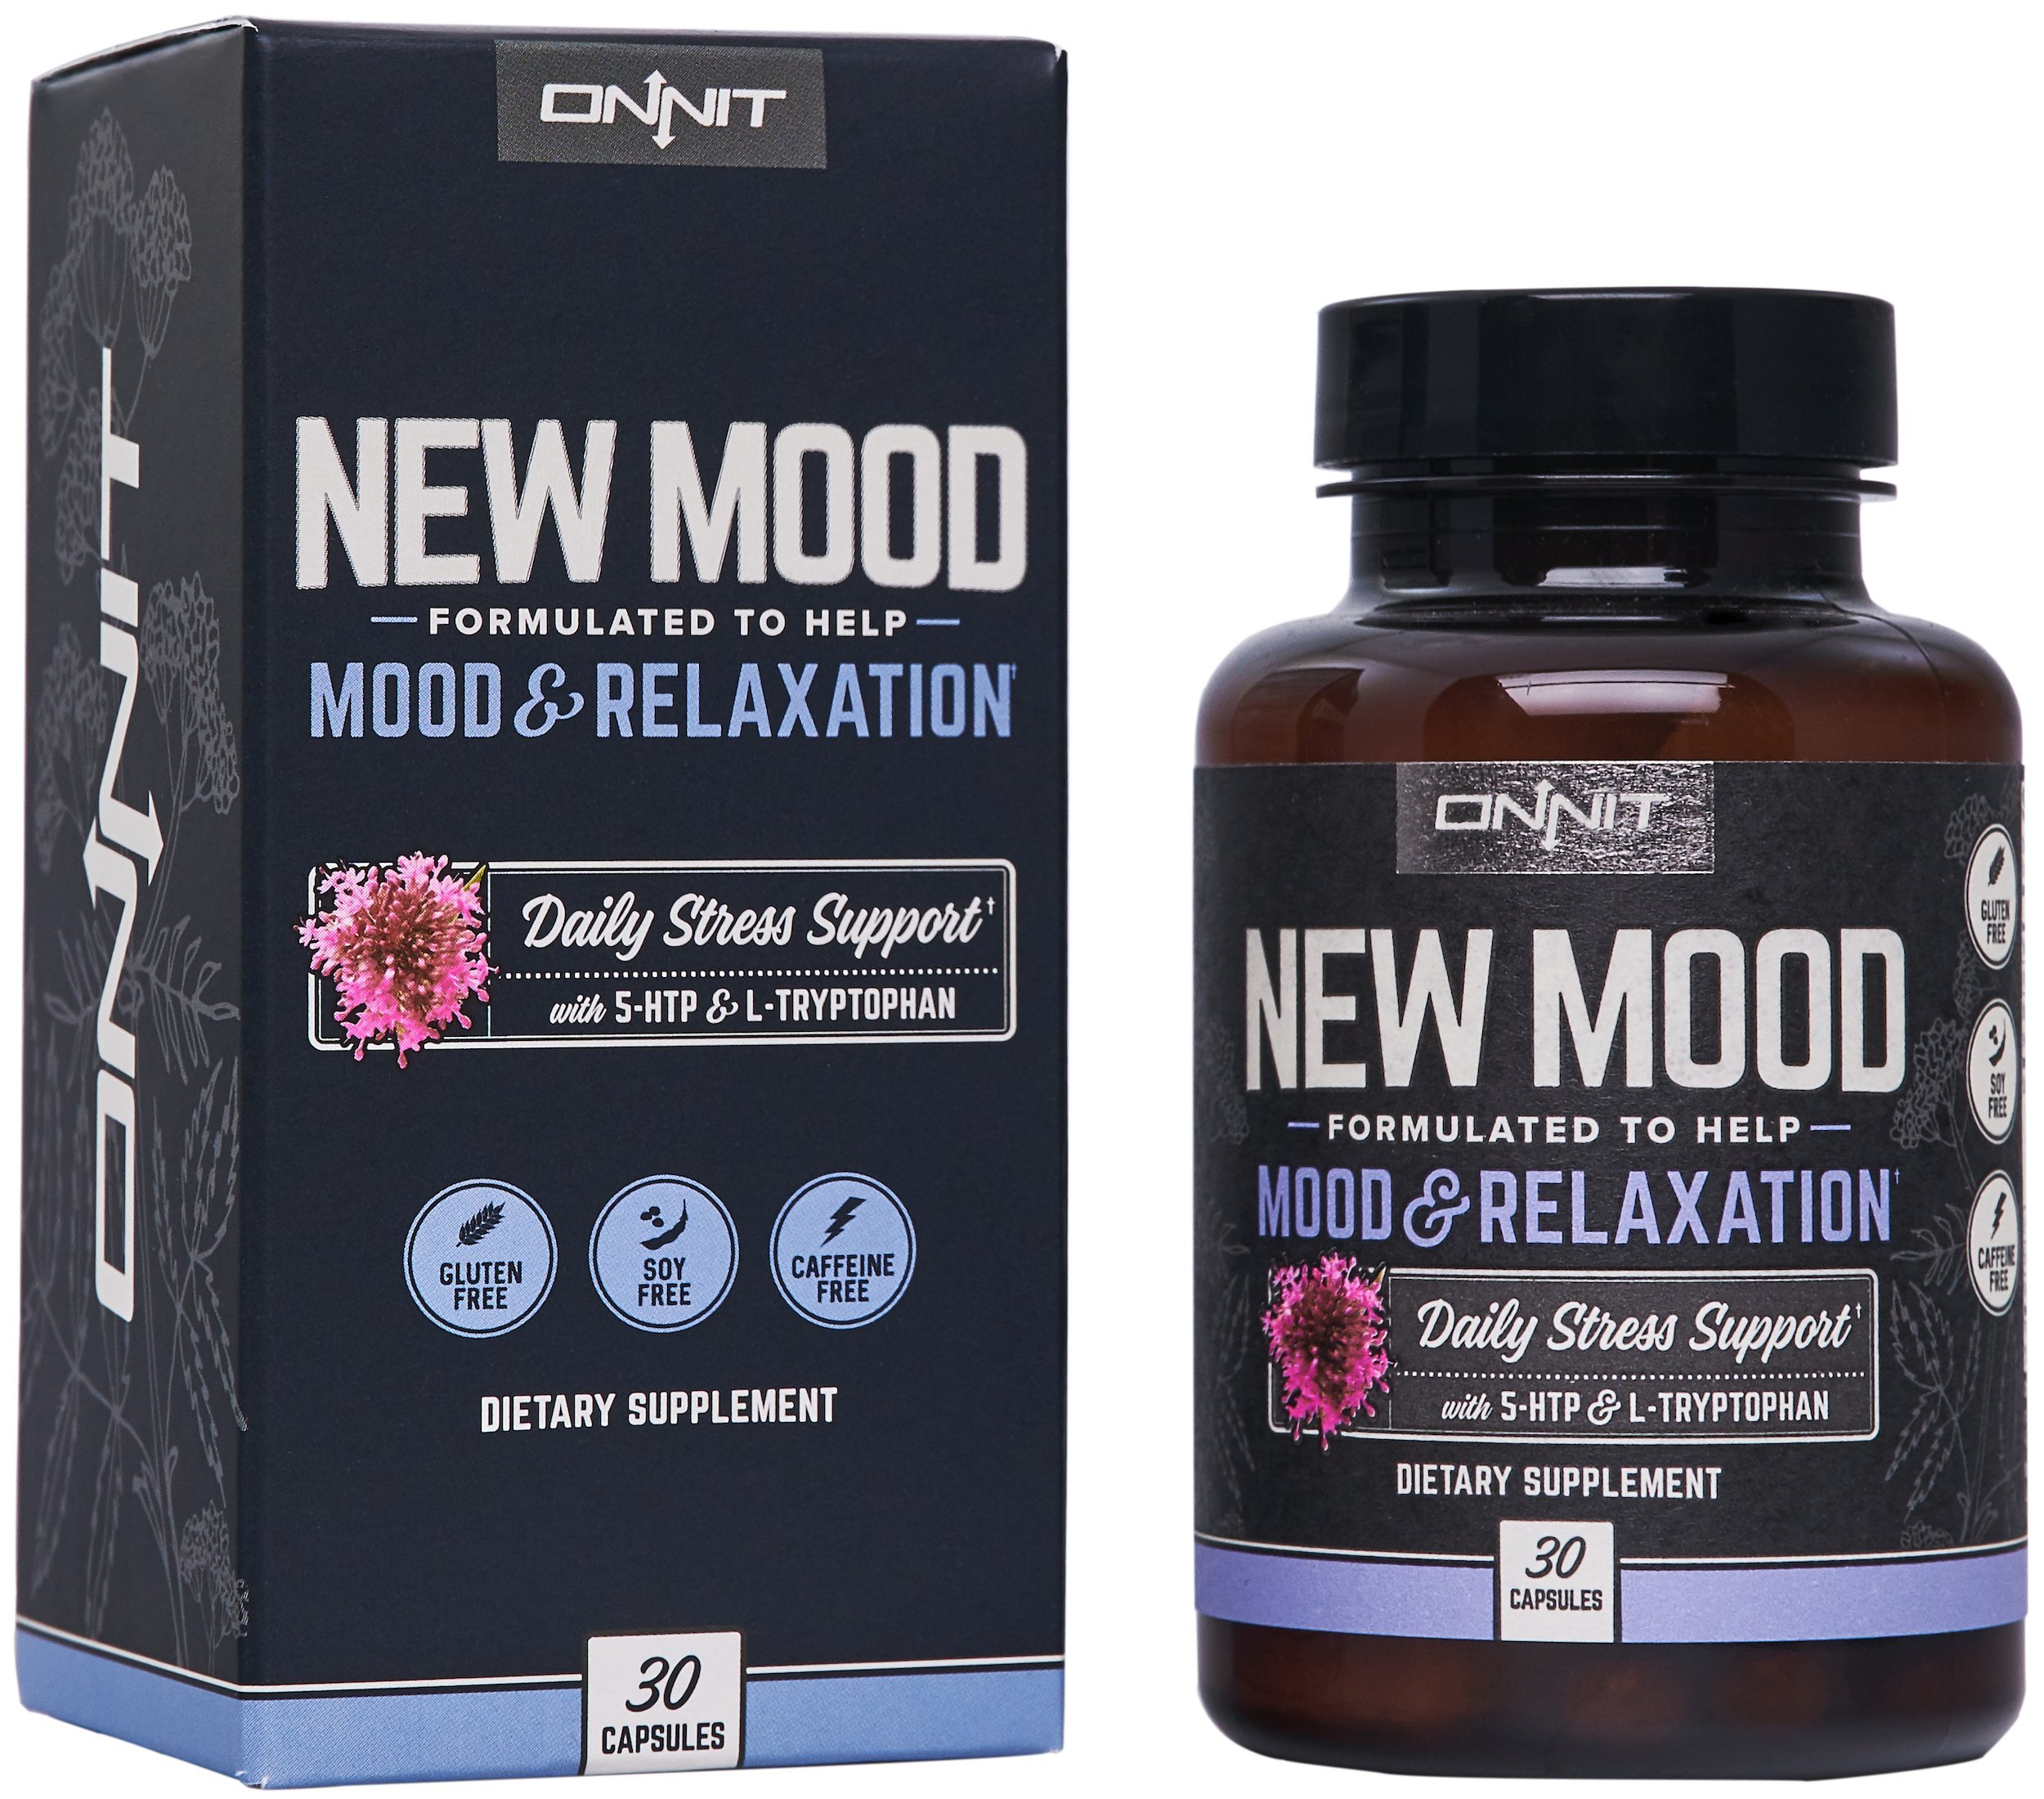 Onnit New MOOD: Daily Stress and Mood Support Supplement (30ct)   5-HTP, L-Tryptophan, and Vitamin B6   Optimize Serotonin Levels for better Mood, Outlook, and Sleep